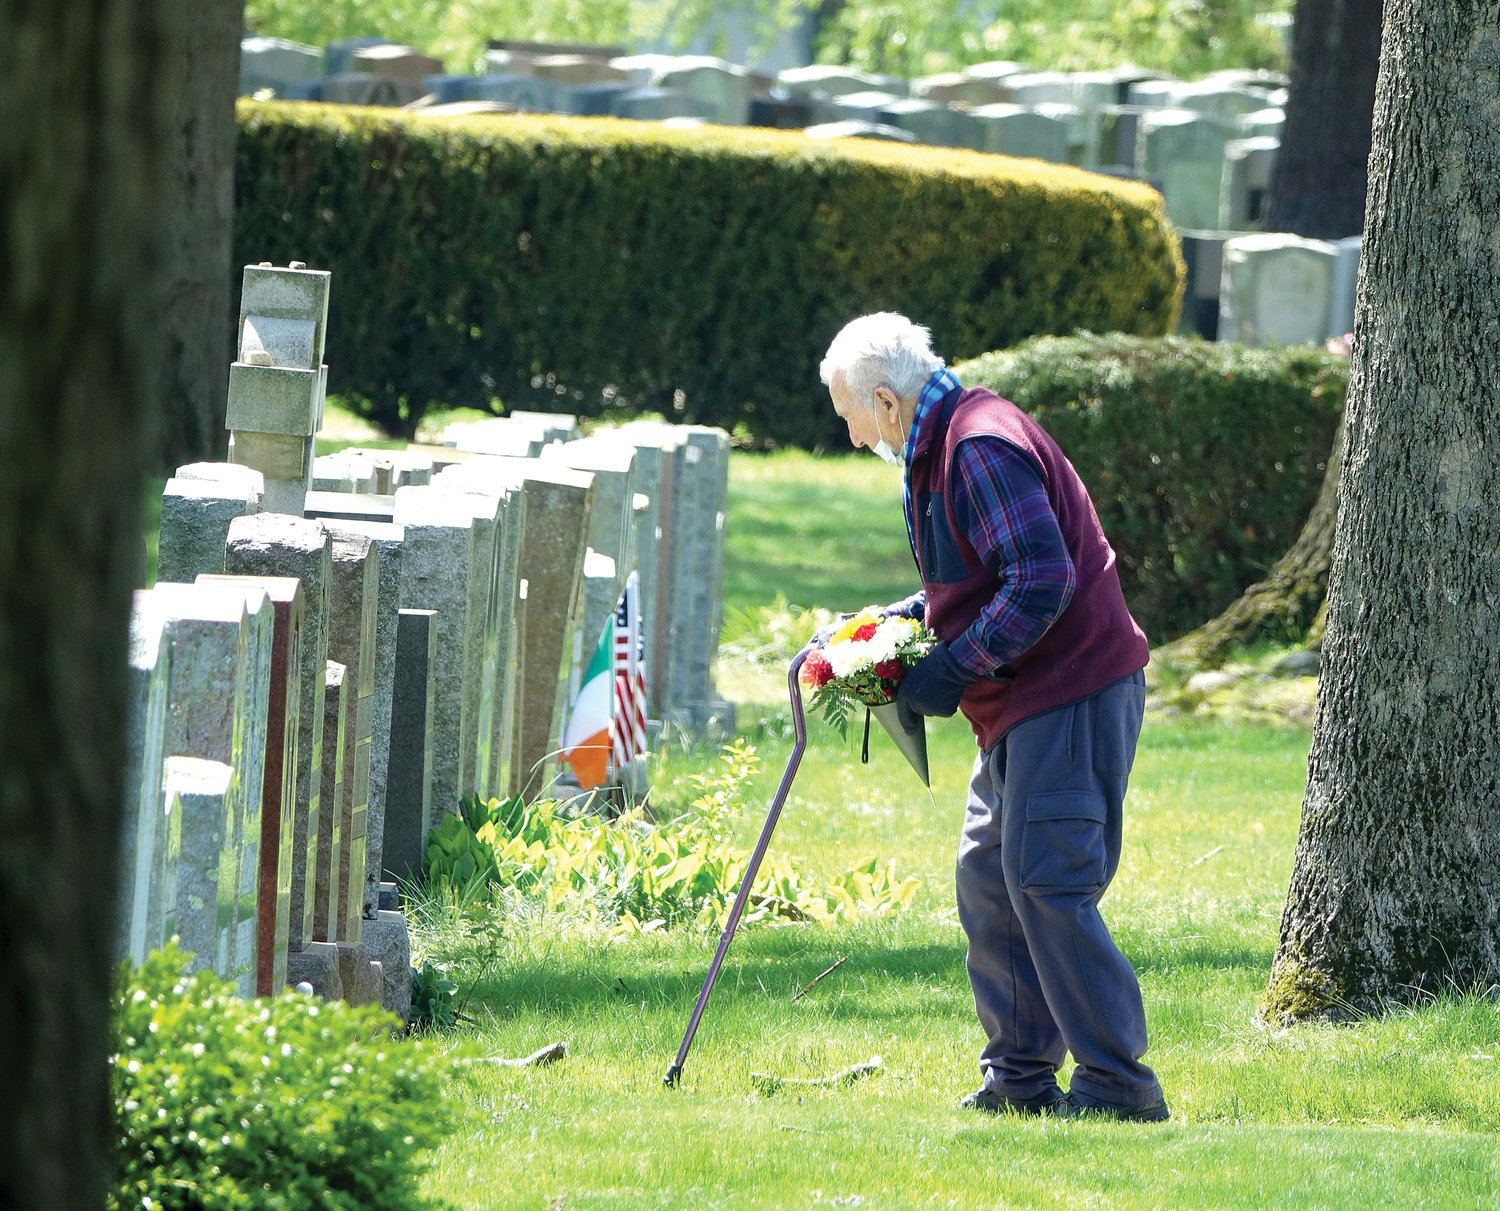 An older gentleman carefully cradles a bouquet of flowers to be placed at a gravesite on Mother's Day, May 10, at Gate of Heaven Cemetery in Hawthorne.